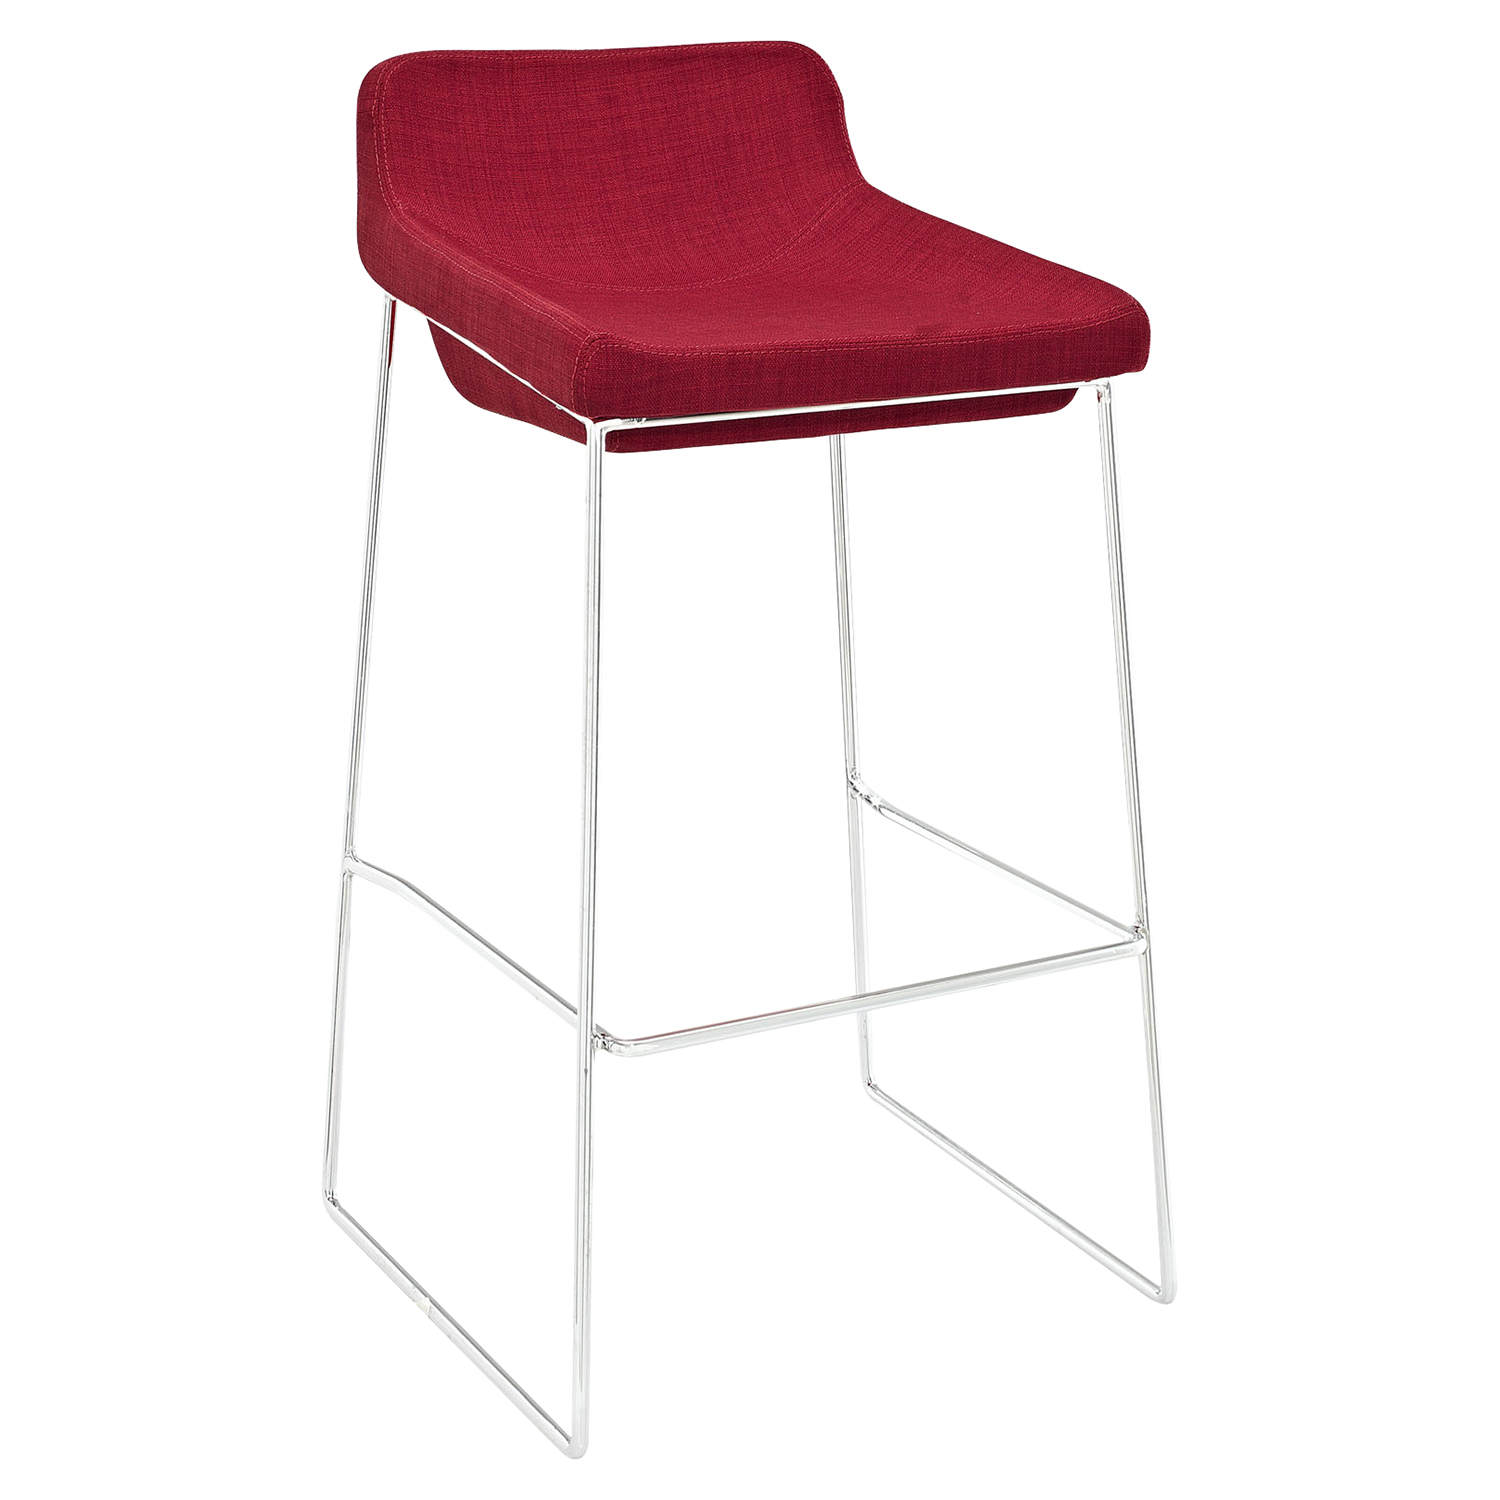 Garner Backless Bar Stool - Red